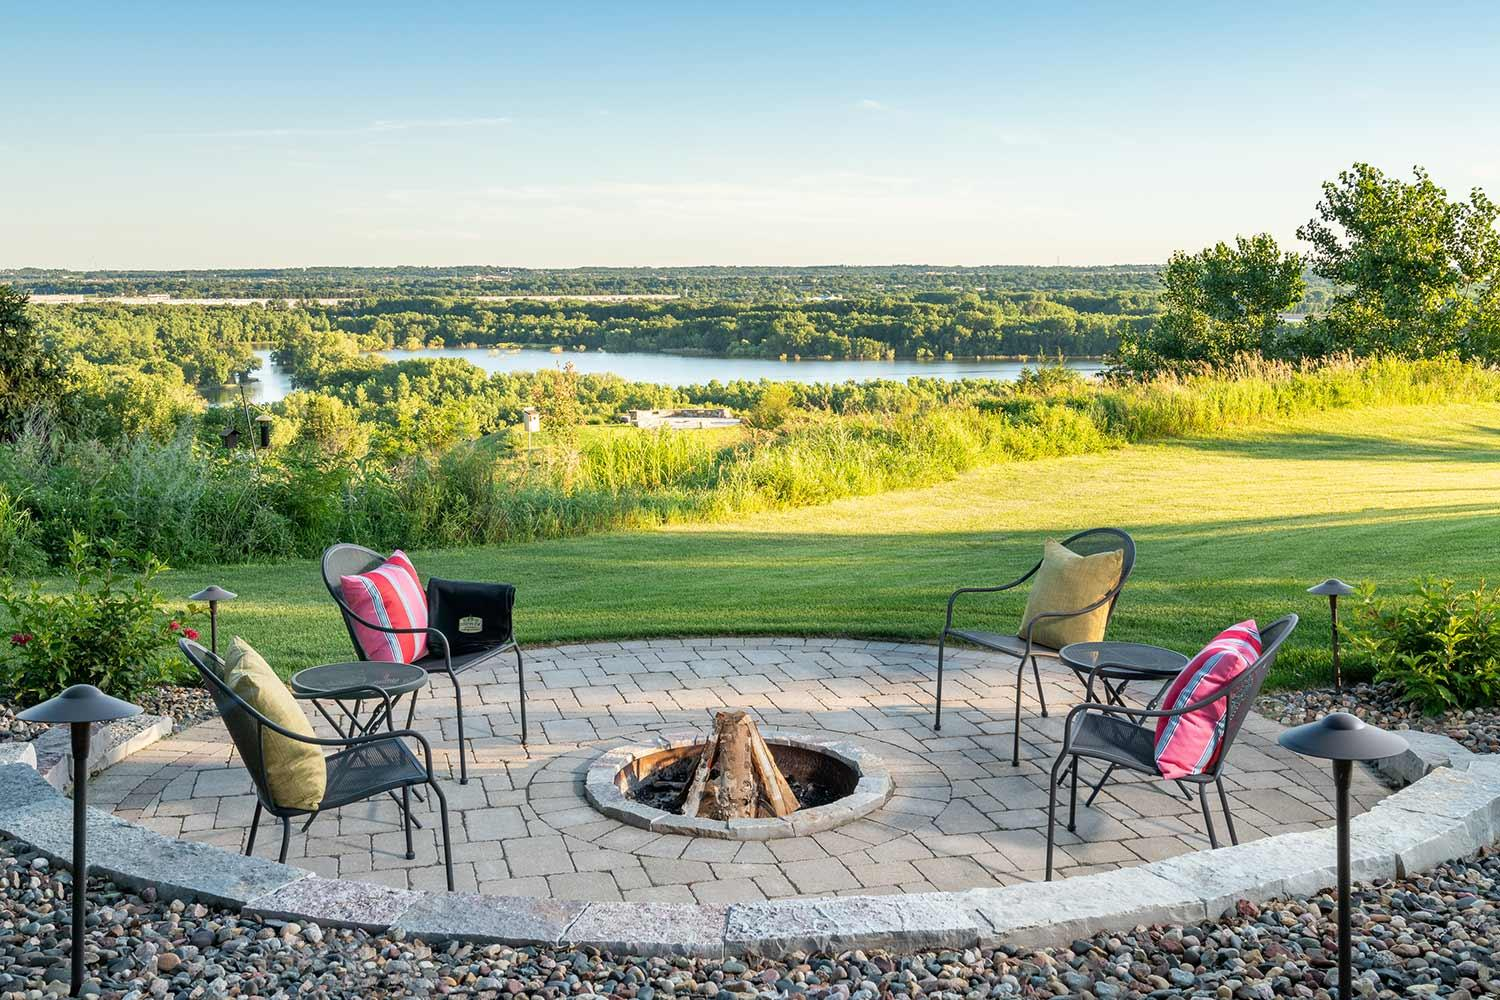 Patio overlooking the Minnesota River.